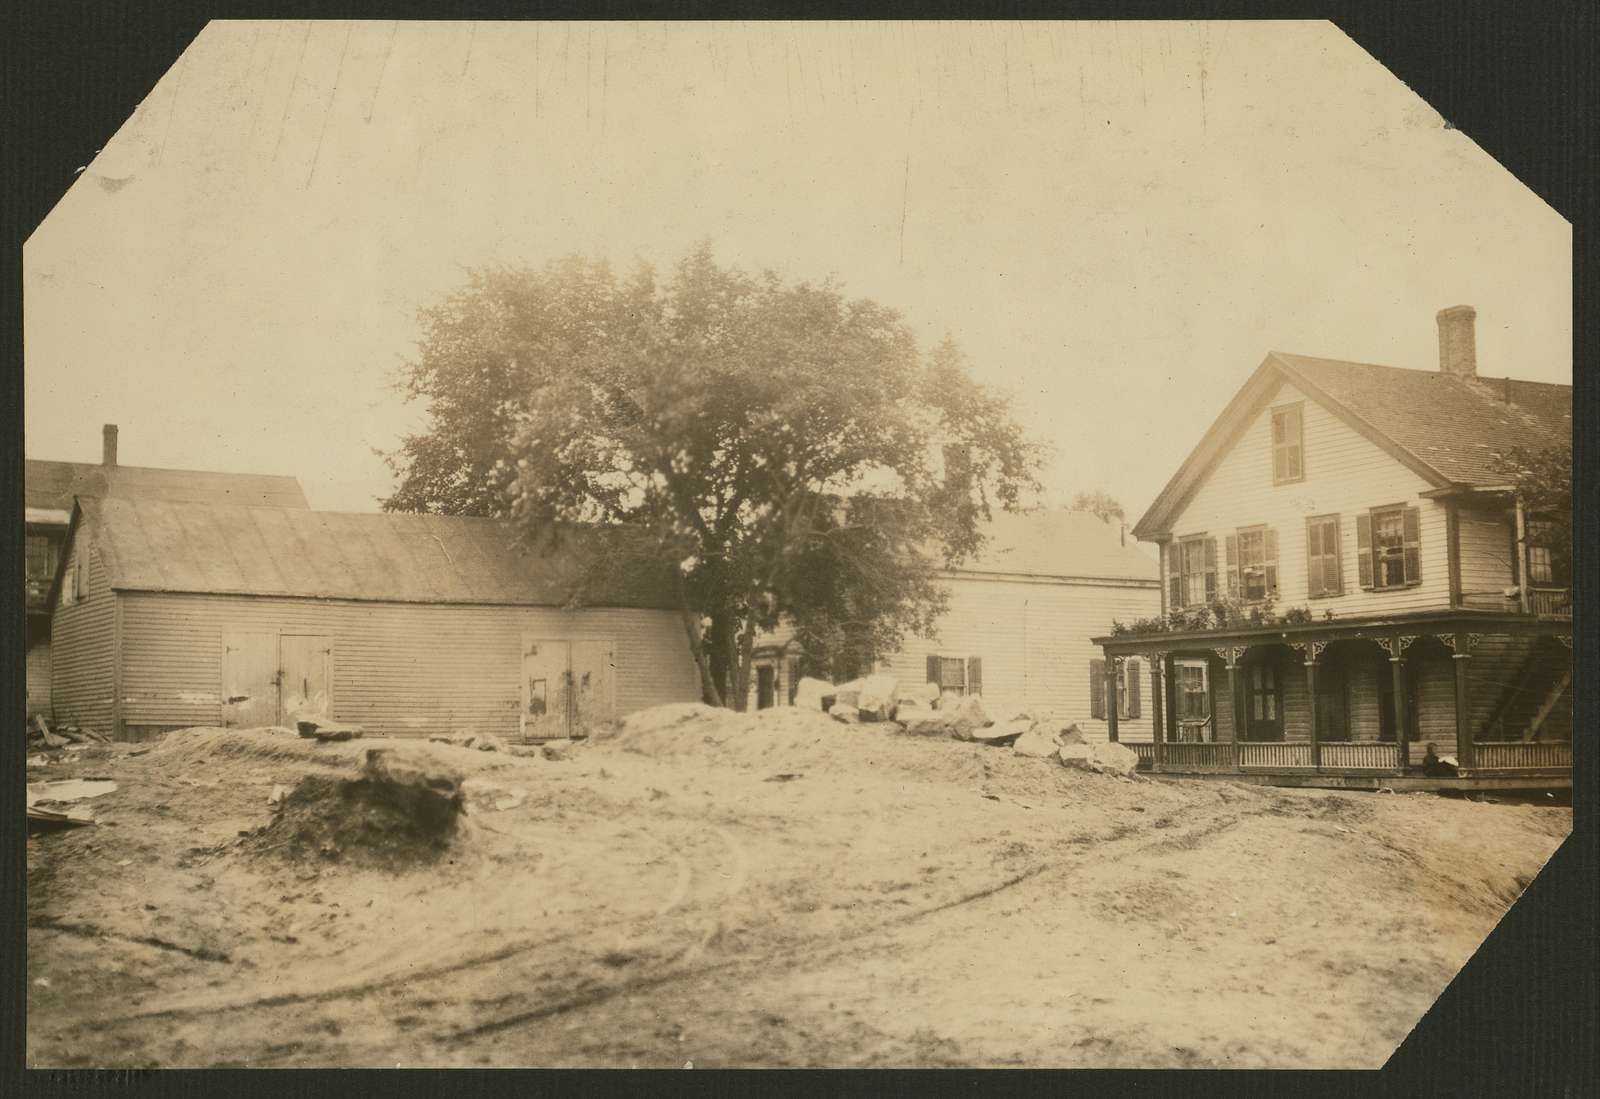 Cottage Street hovels down by the river in which a great deal of home work is done on suspenders. Location: Easthampton, Massachusetts